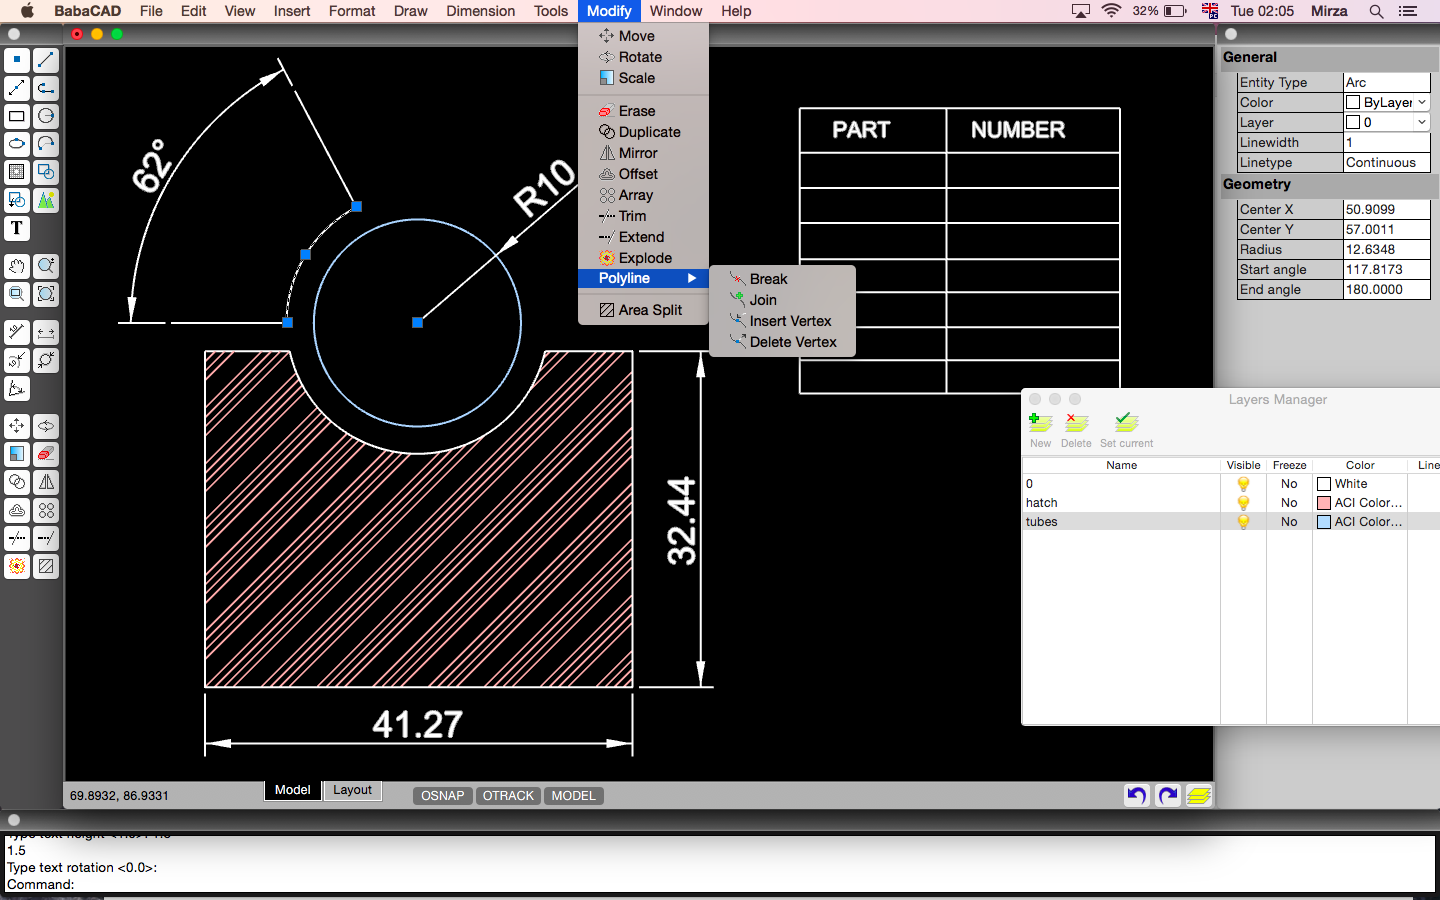 Babacad Free Cad Software For Mac Os: free cad programs